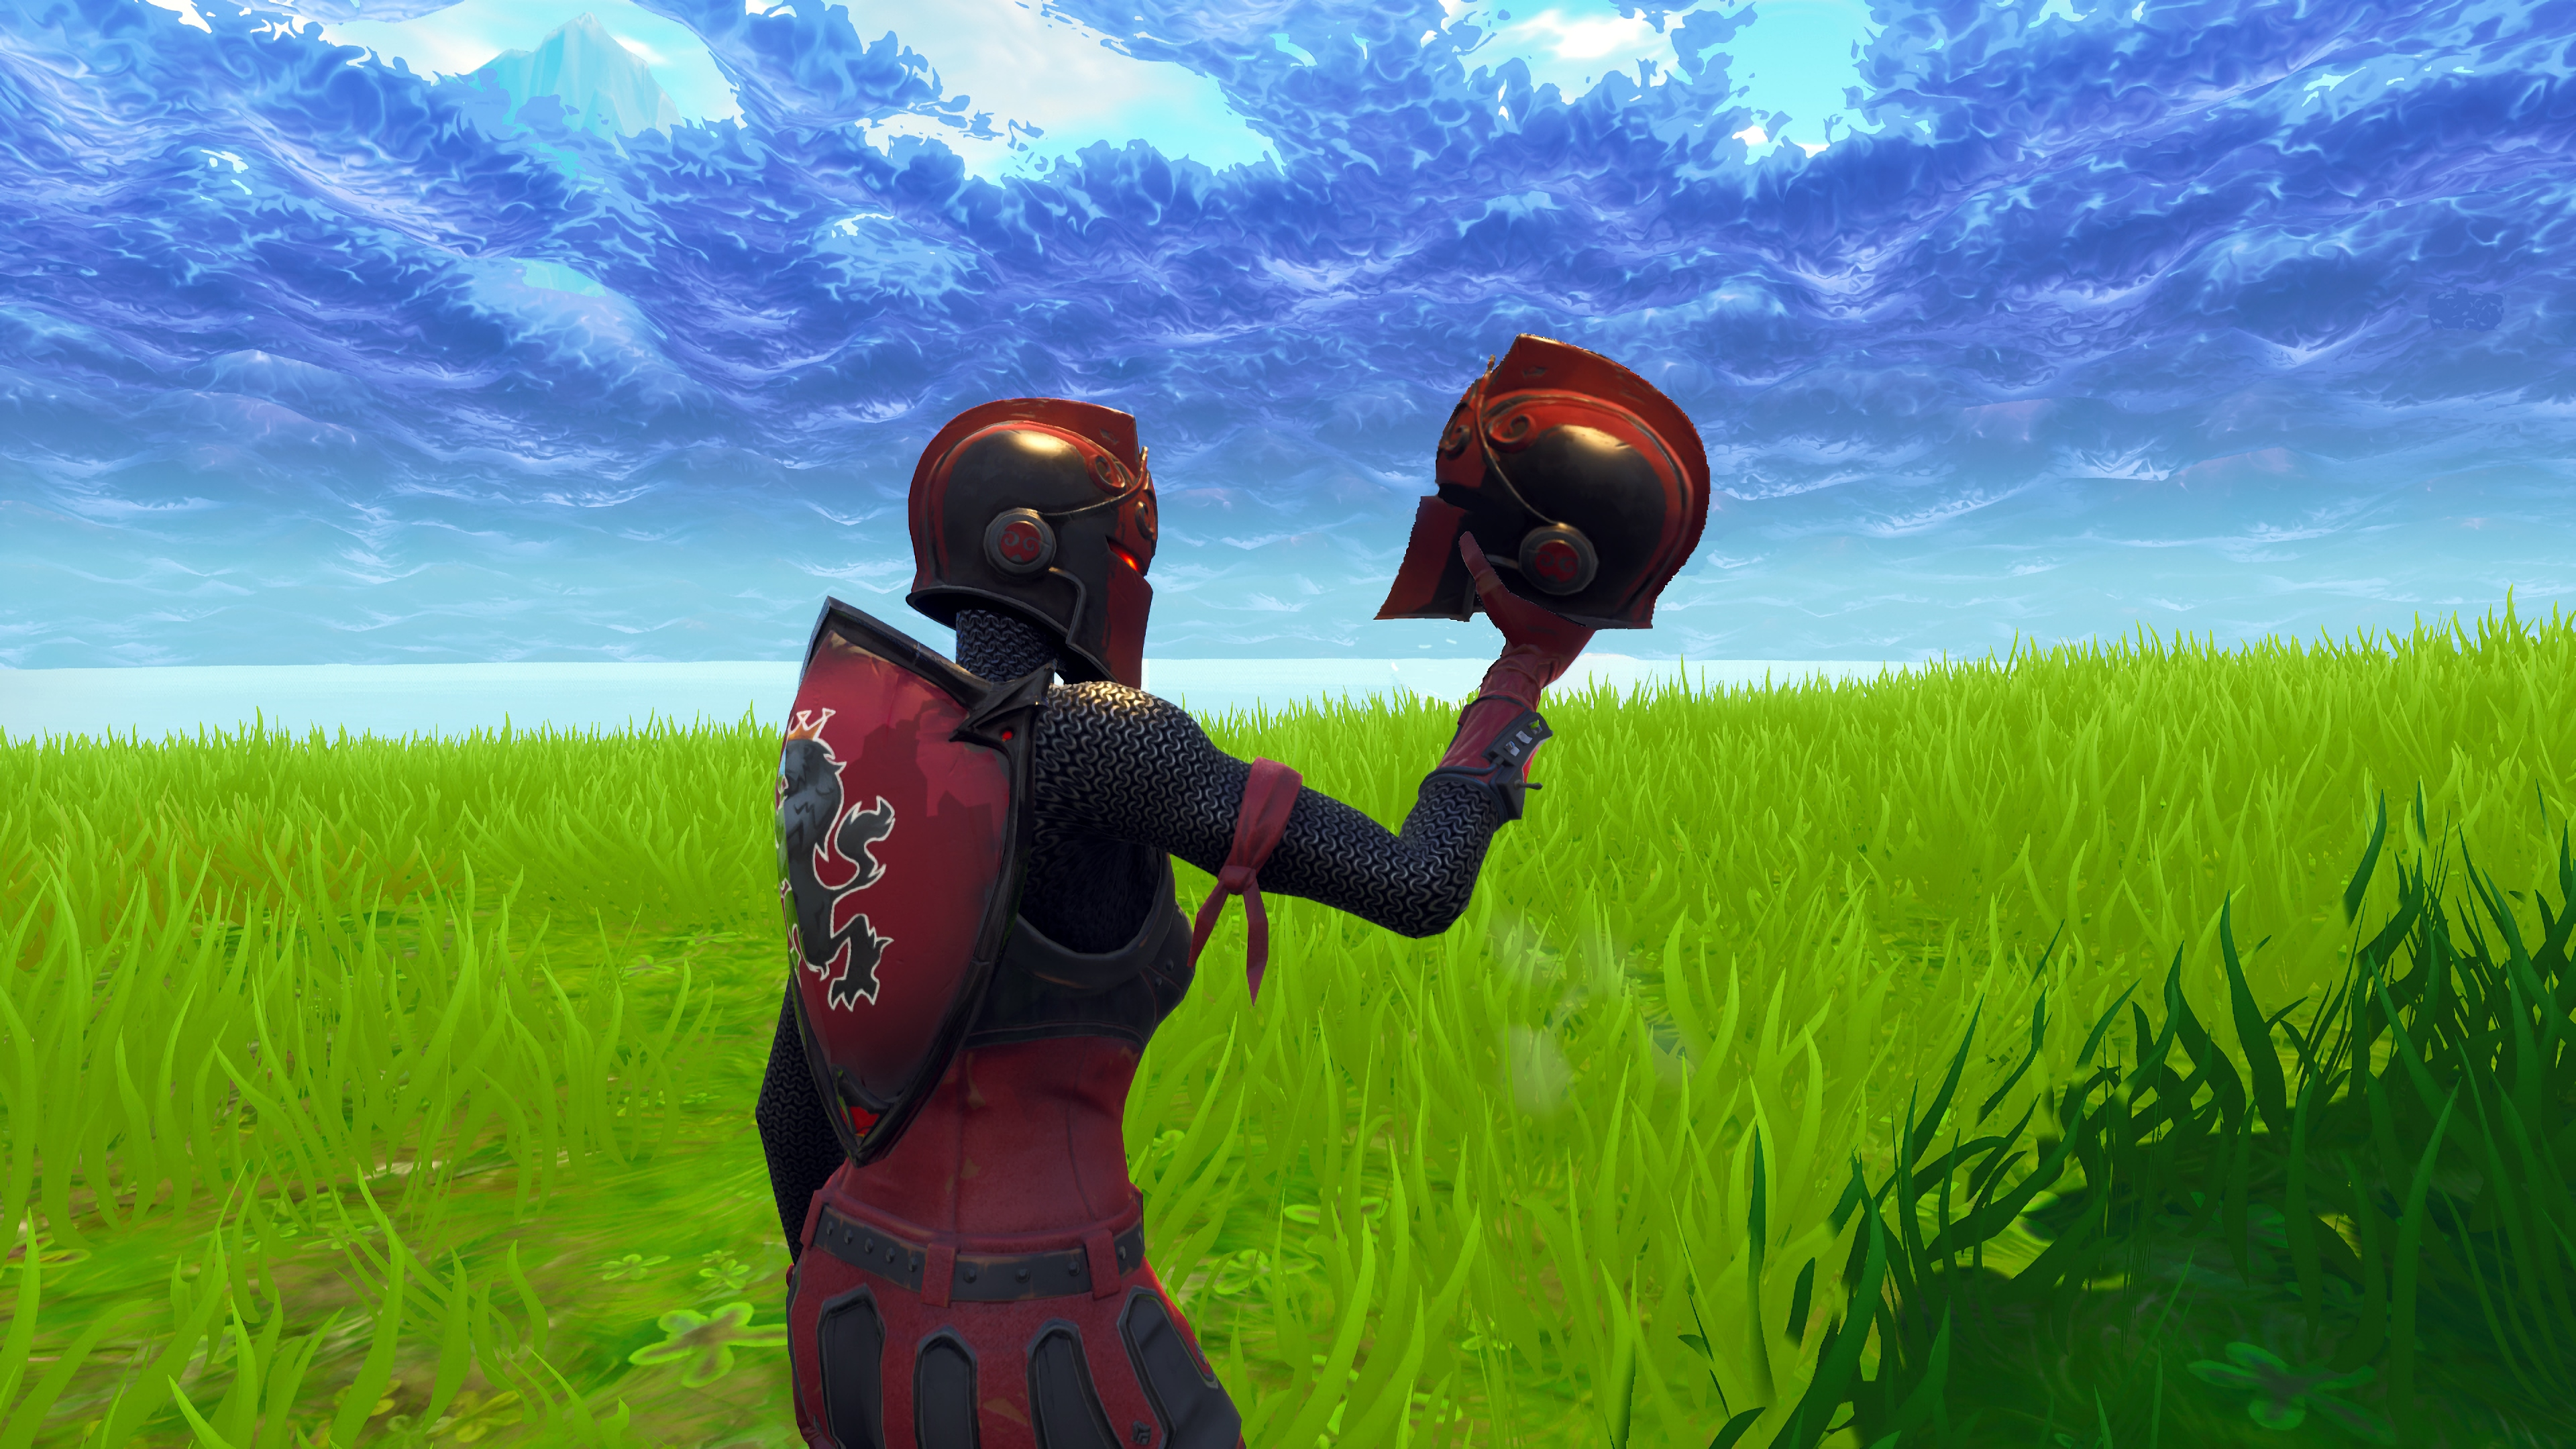 Cozy Red Knight 4k 8k Hd Fortnite Battle Royale Wallpaper Ivoiregion